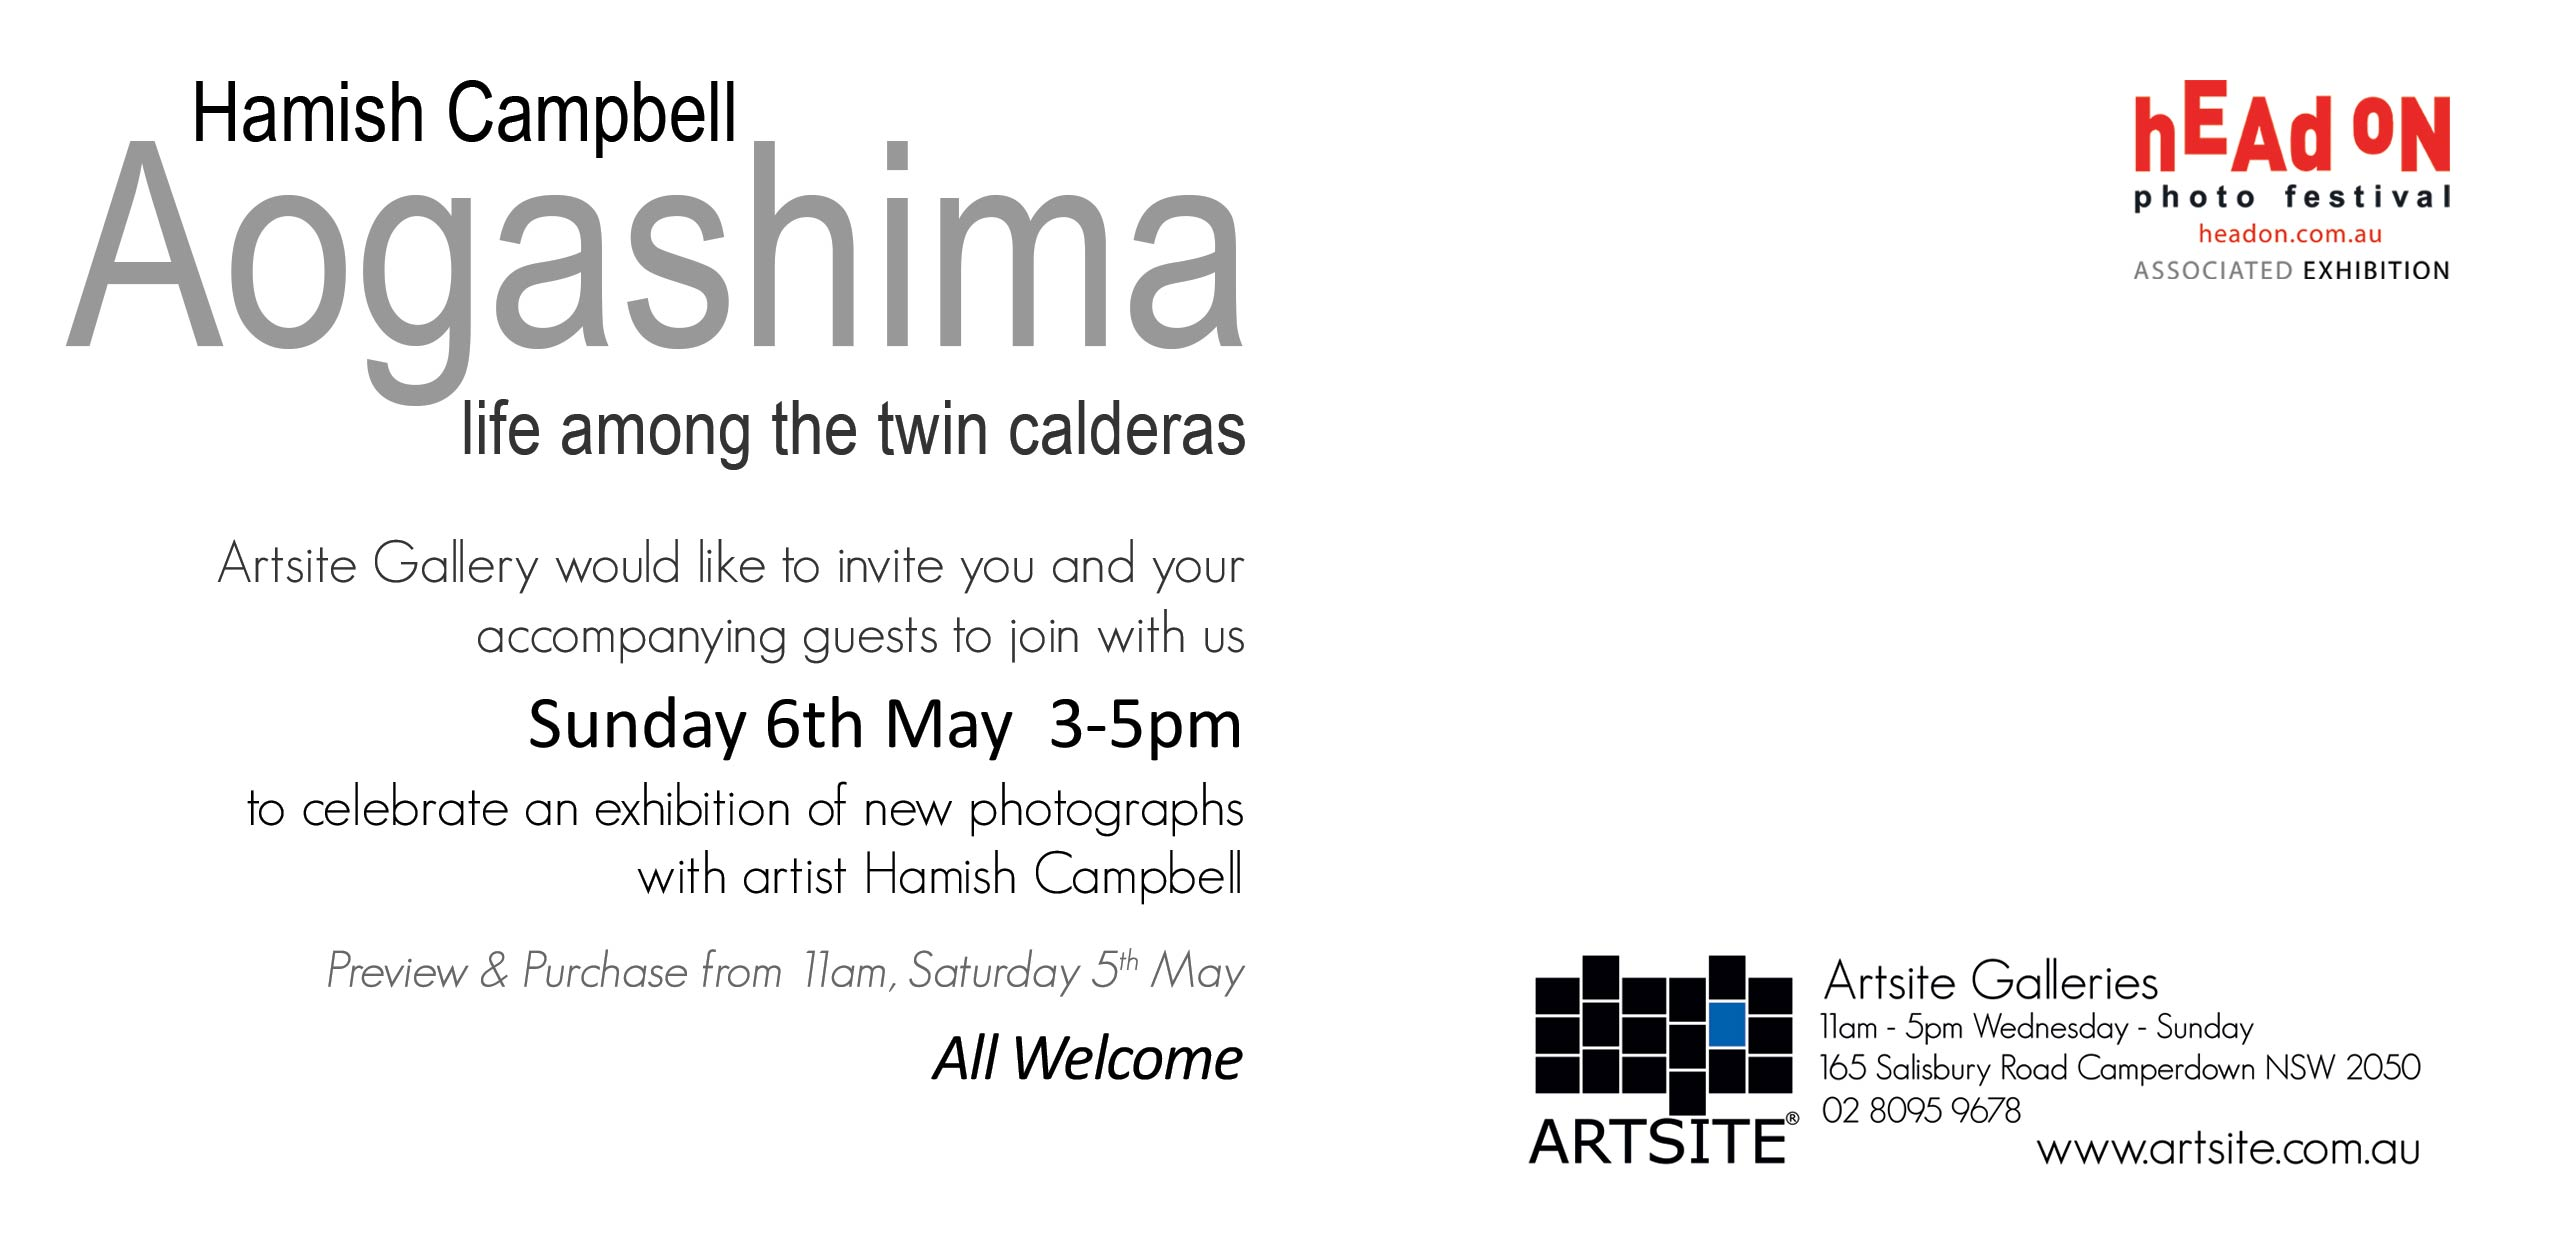 Artsite Gallery Exhibition. Hamish Campbell: Aogashima Life between the twin Calderas. Head On Photo Festival 2018, 05-27 May 2018